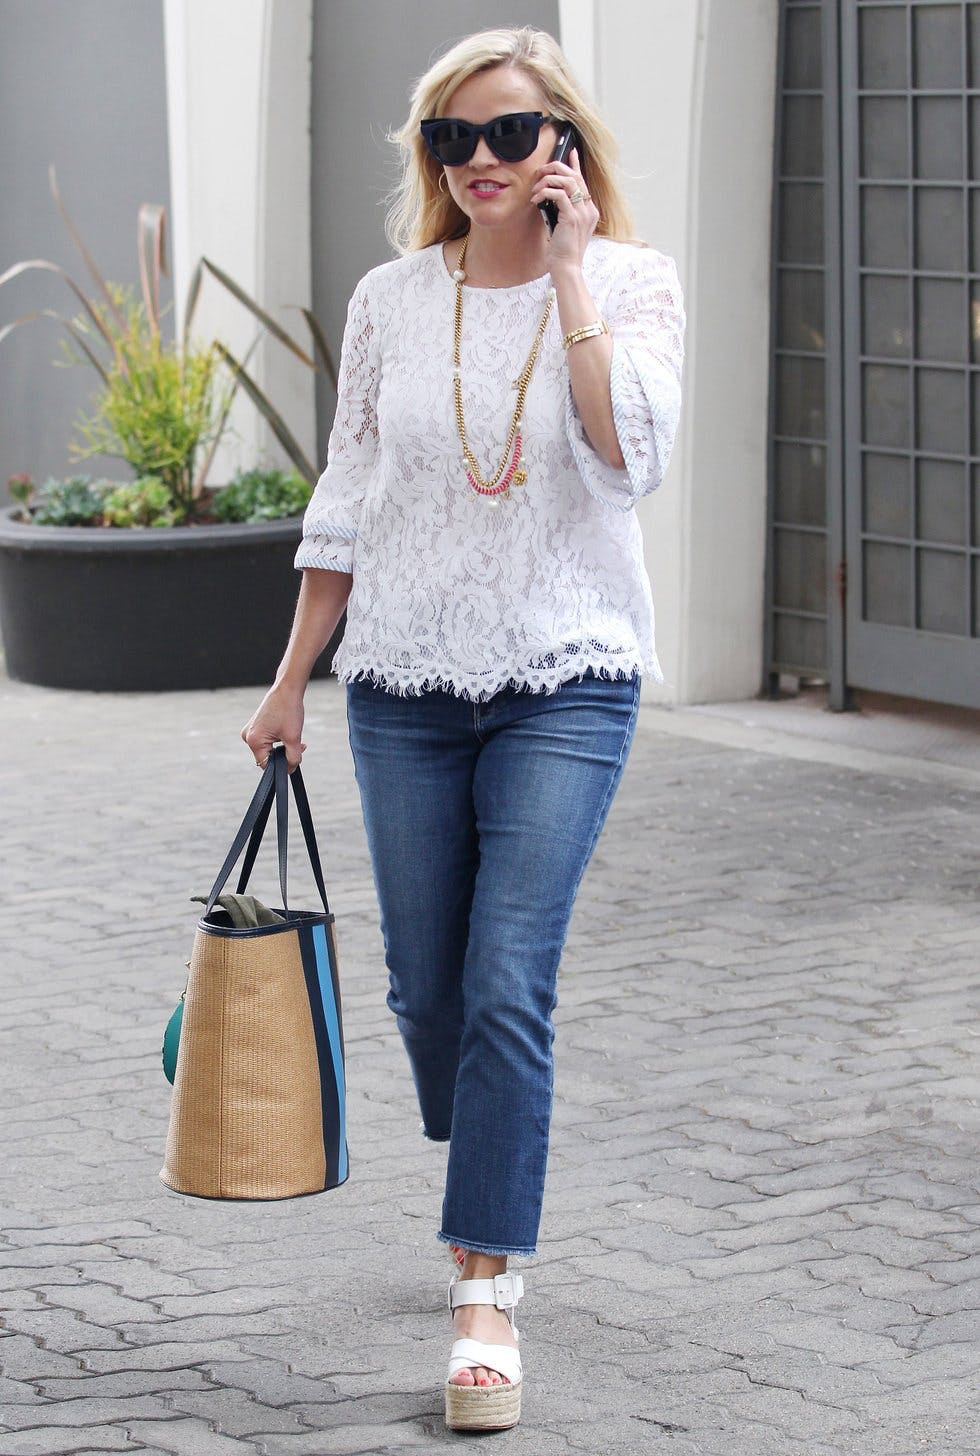 b6af5d9c7a6 A pair of espadrille flatforms lend a modern edge to a classic white lace  blouse and jeans combo. Finish the look with your favourite basket bag for  an ...